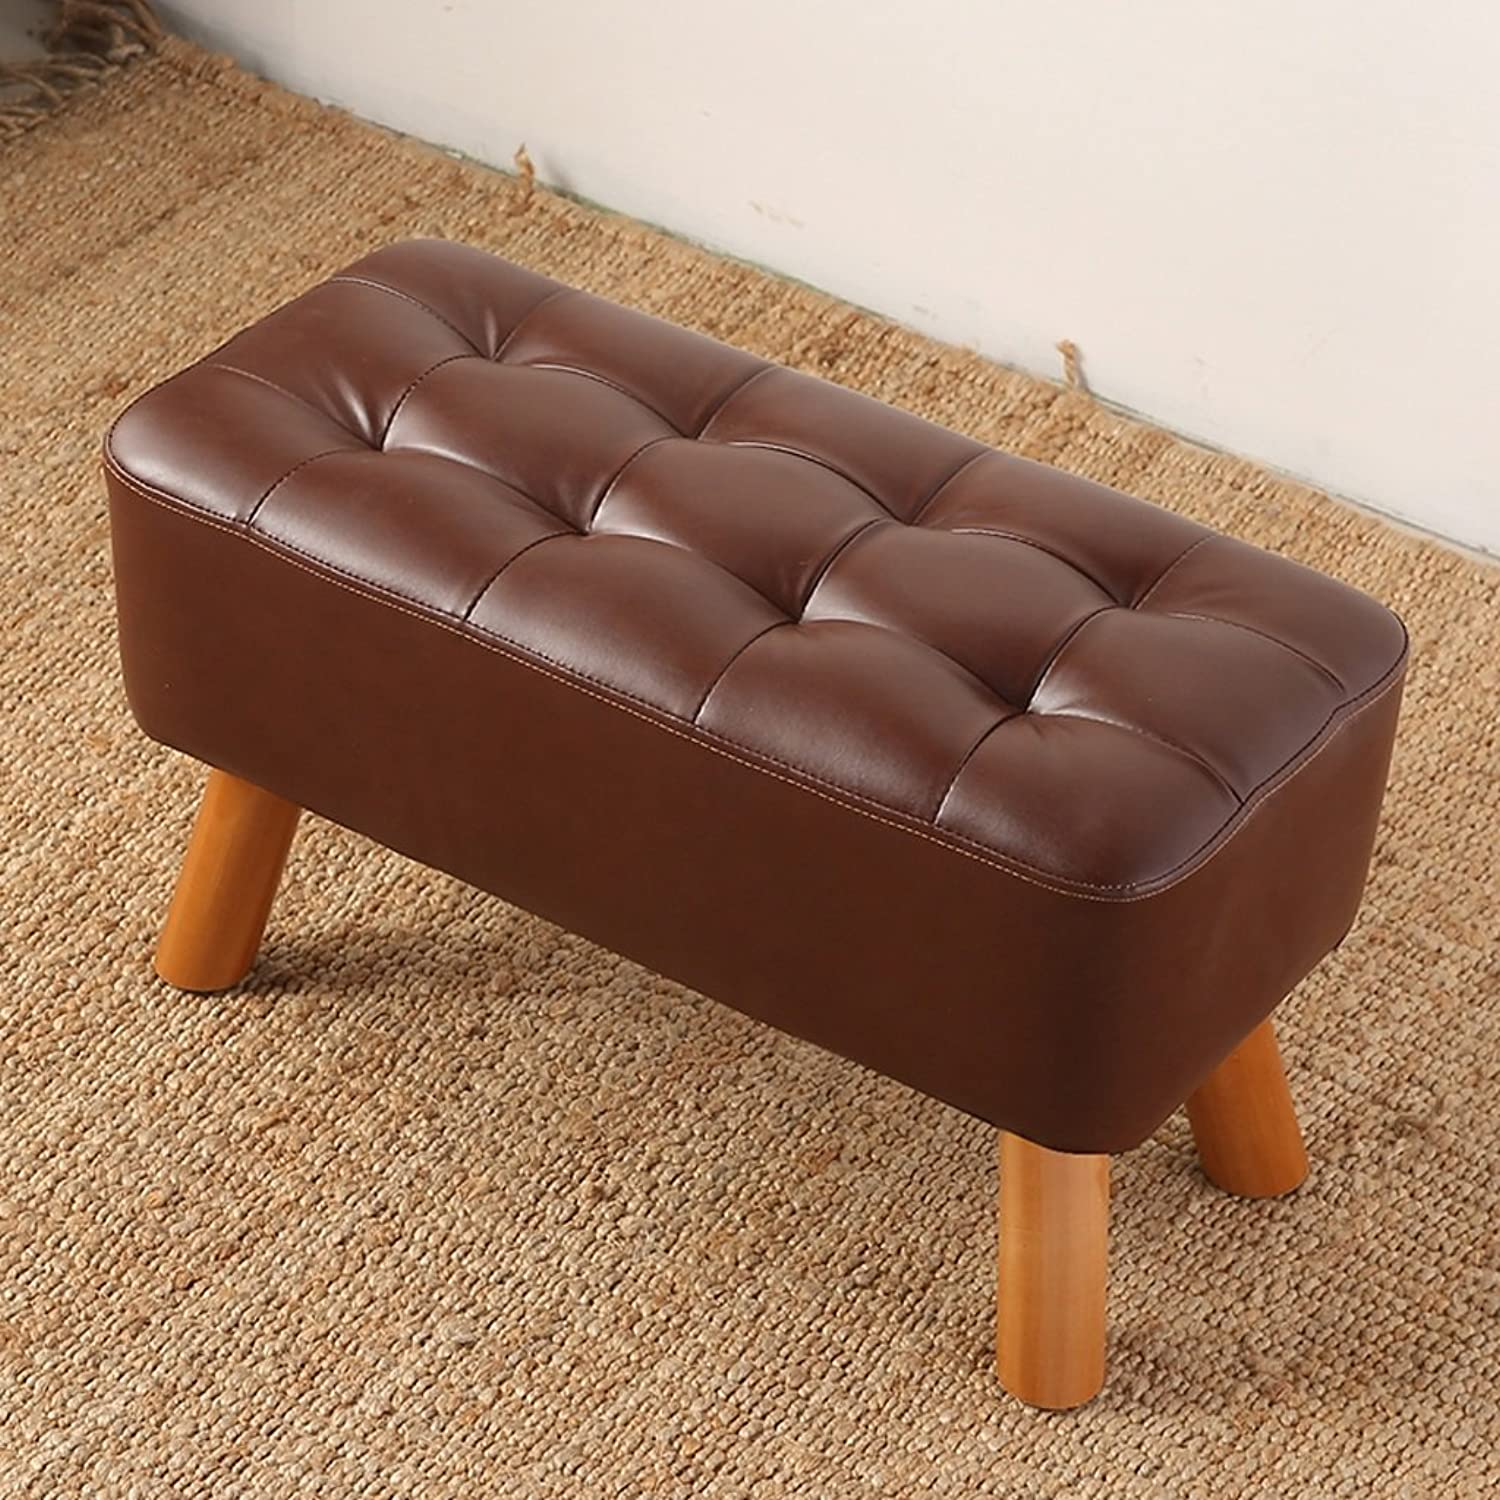 MXD Stool Change shoes Bench Bench Simple Modern Sofa Stool Bench Wear shoes Bench Brown